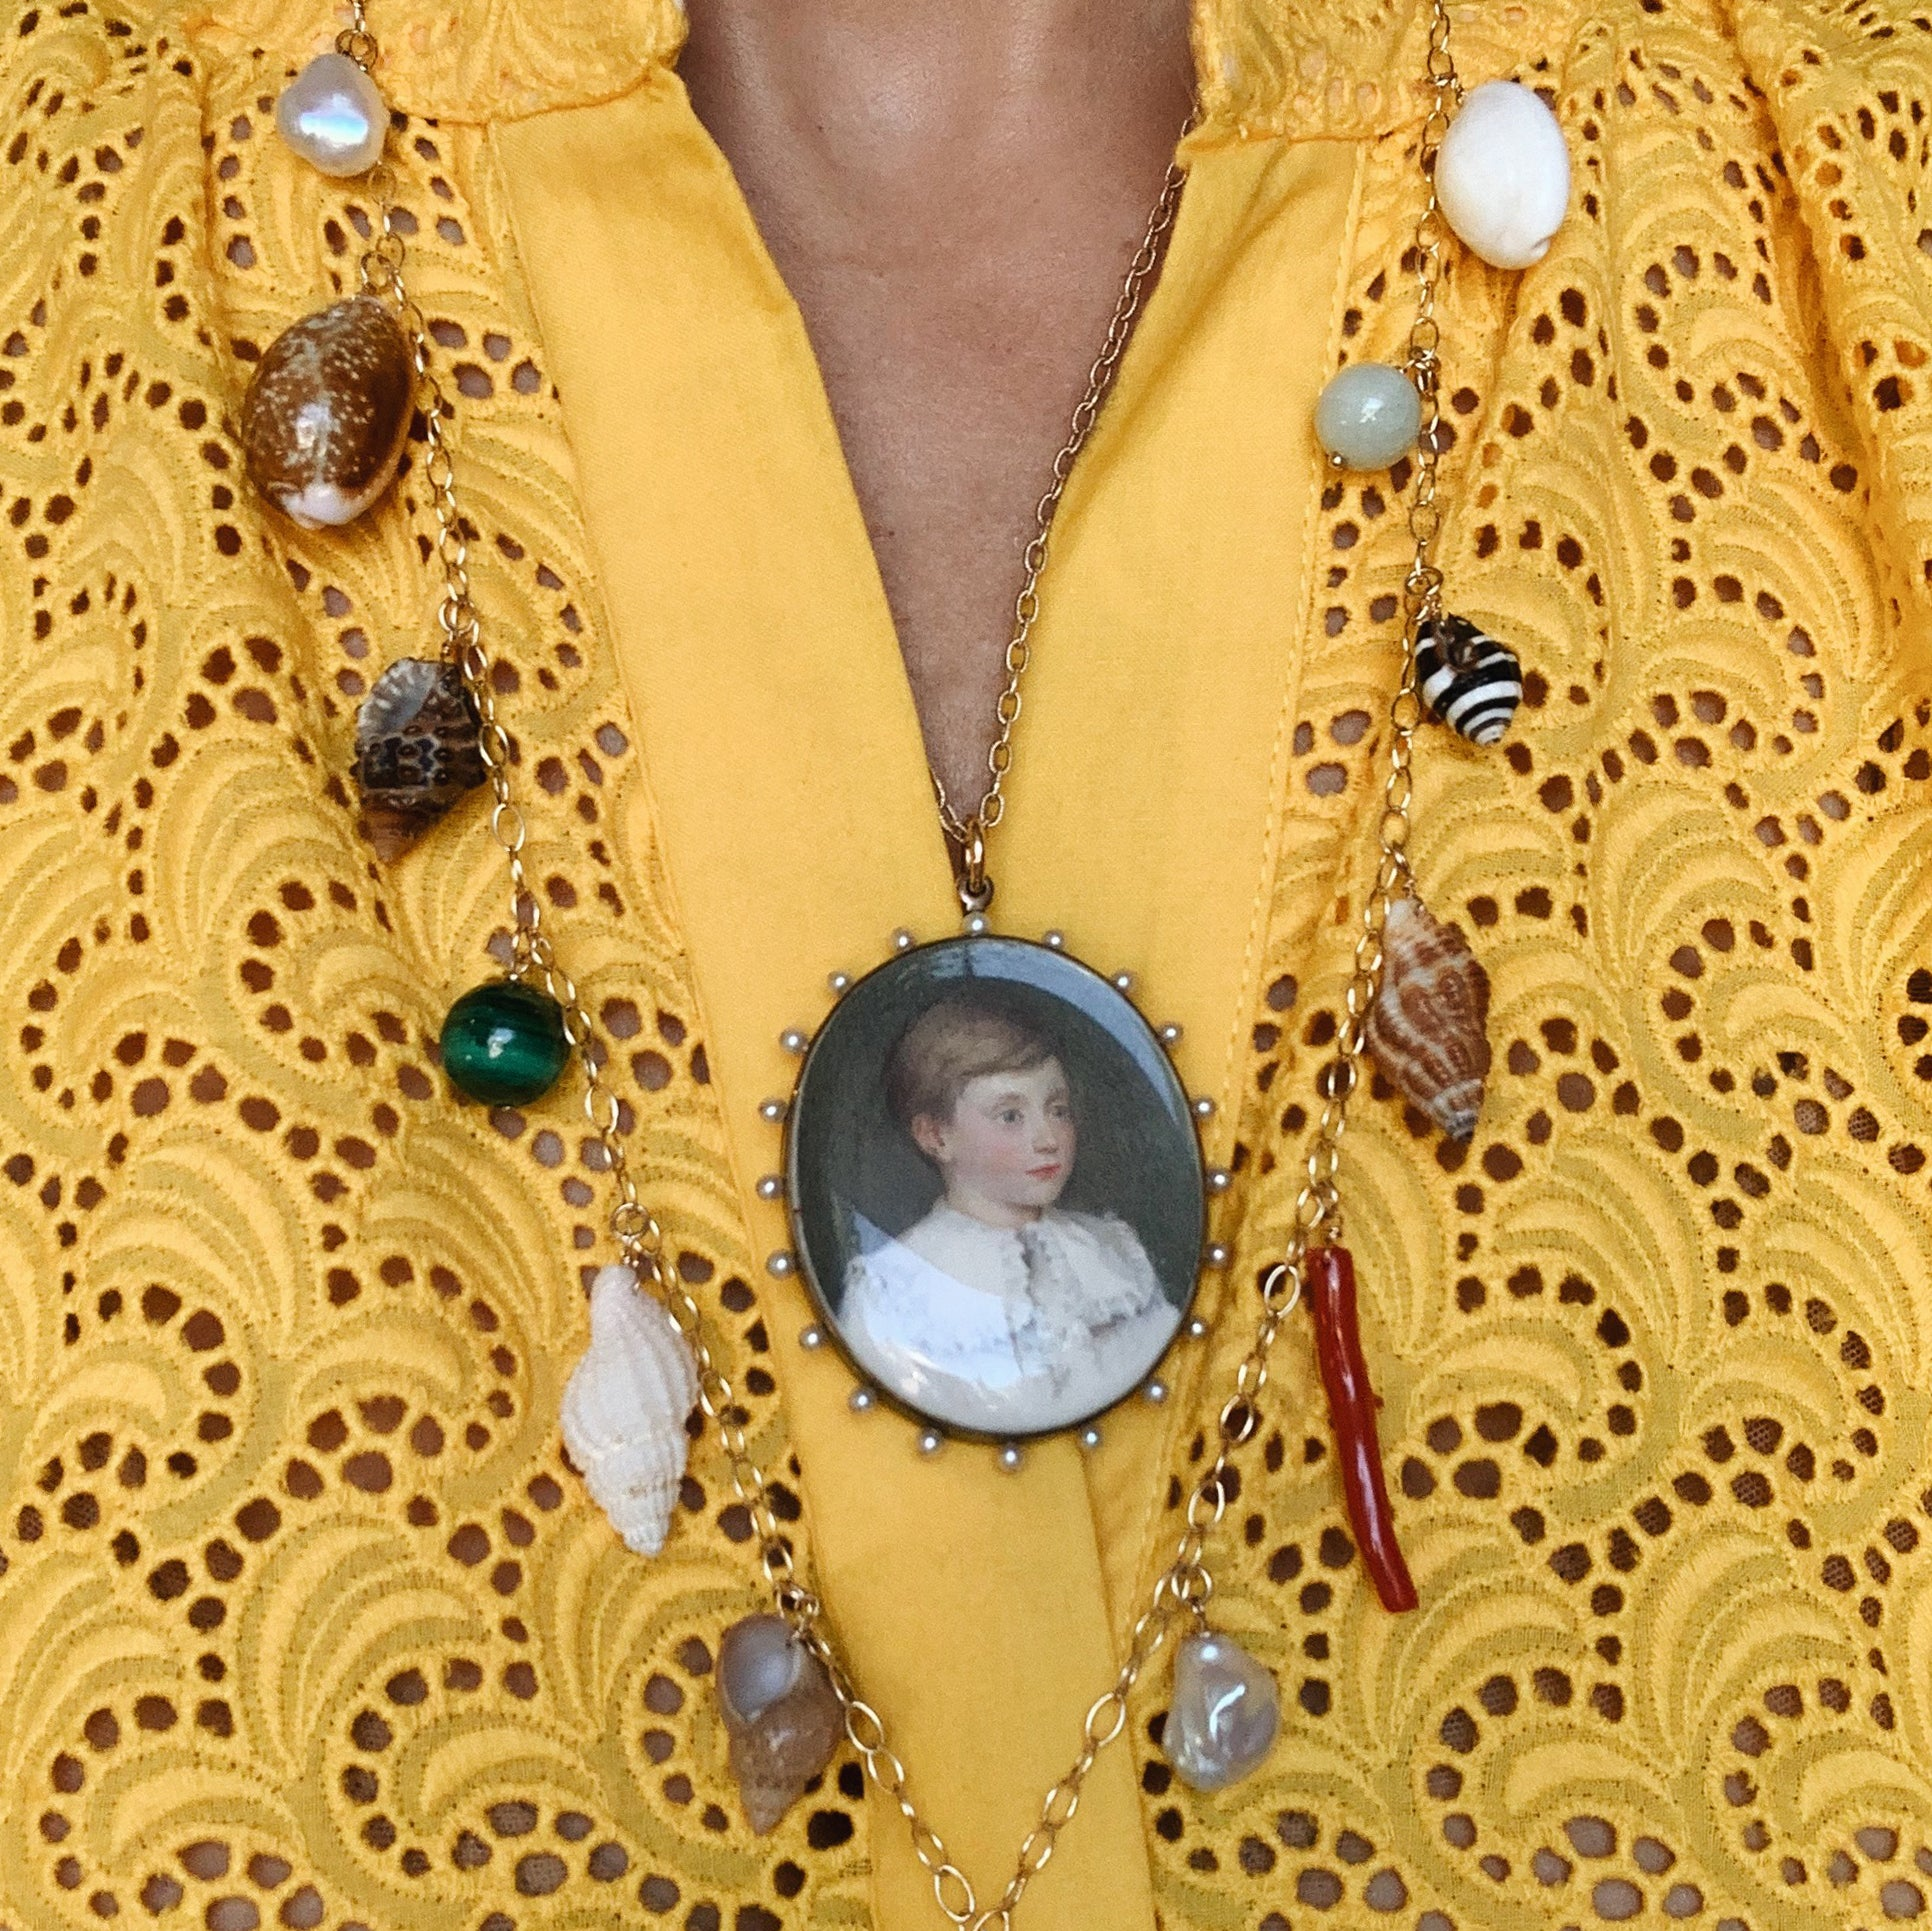 Antique Miniature Portrait Pendant & Gold Chain